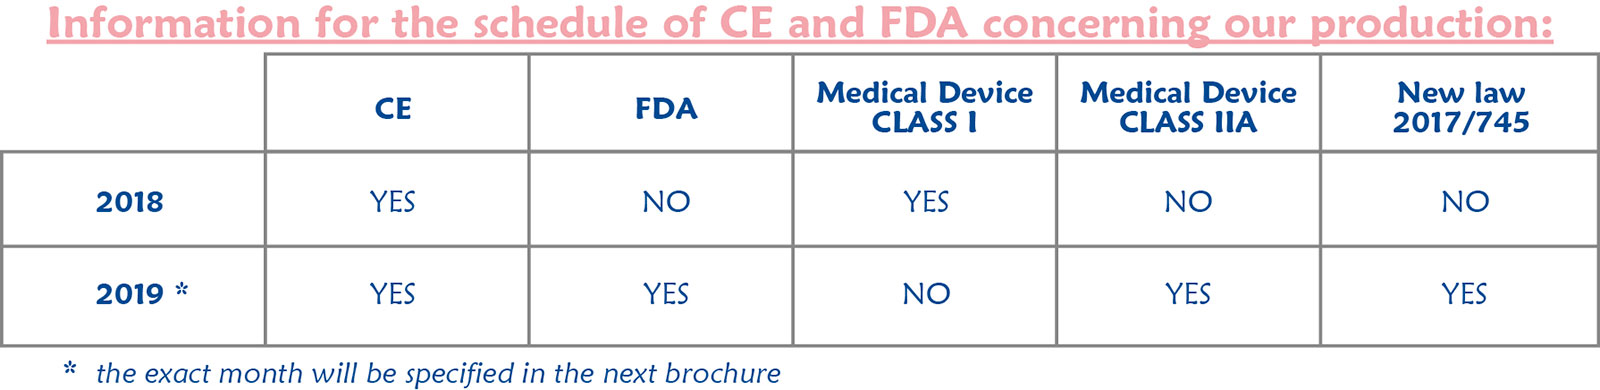 table-for-CE-and-FDA-to-insert-after-RECOMMENDATIONS_V3